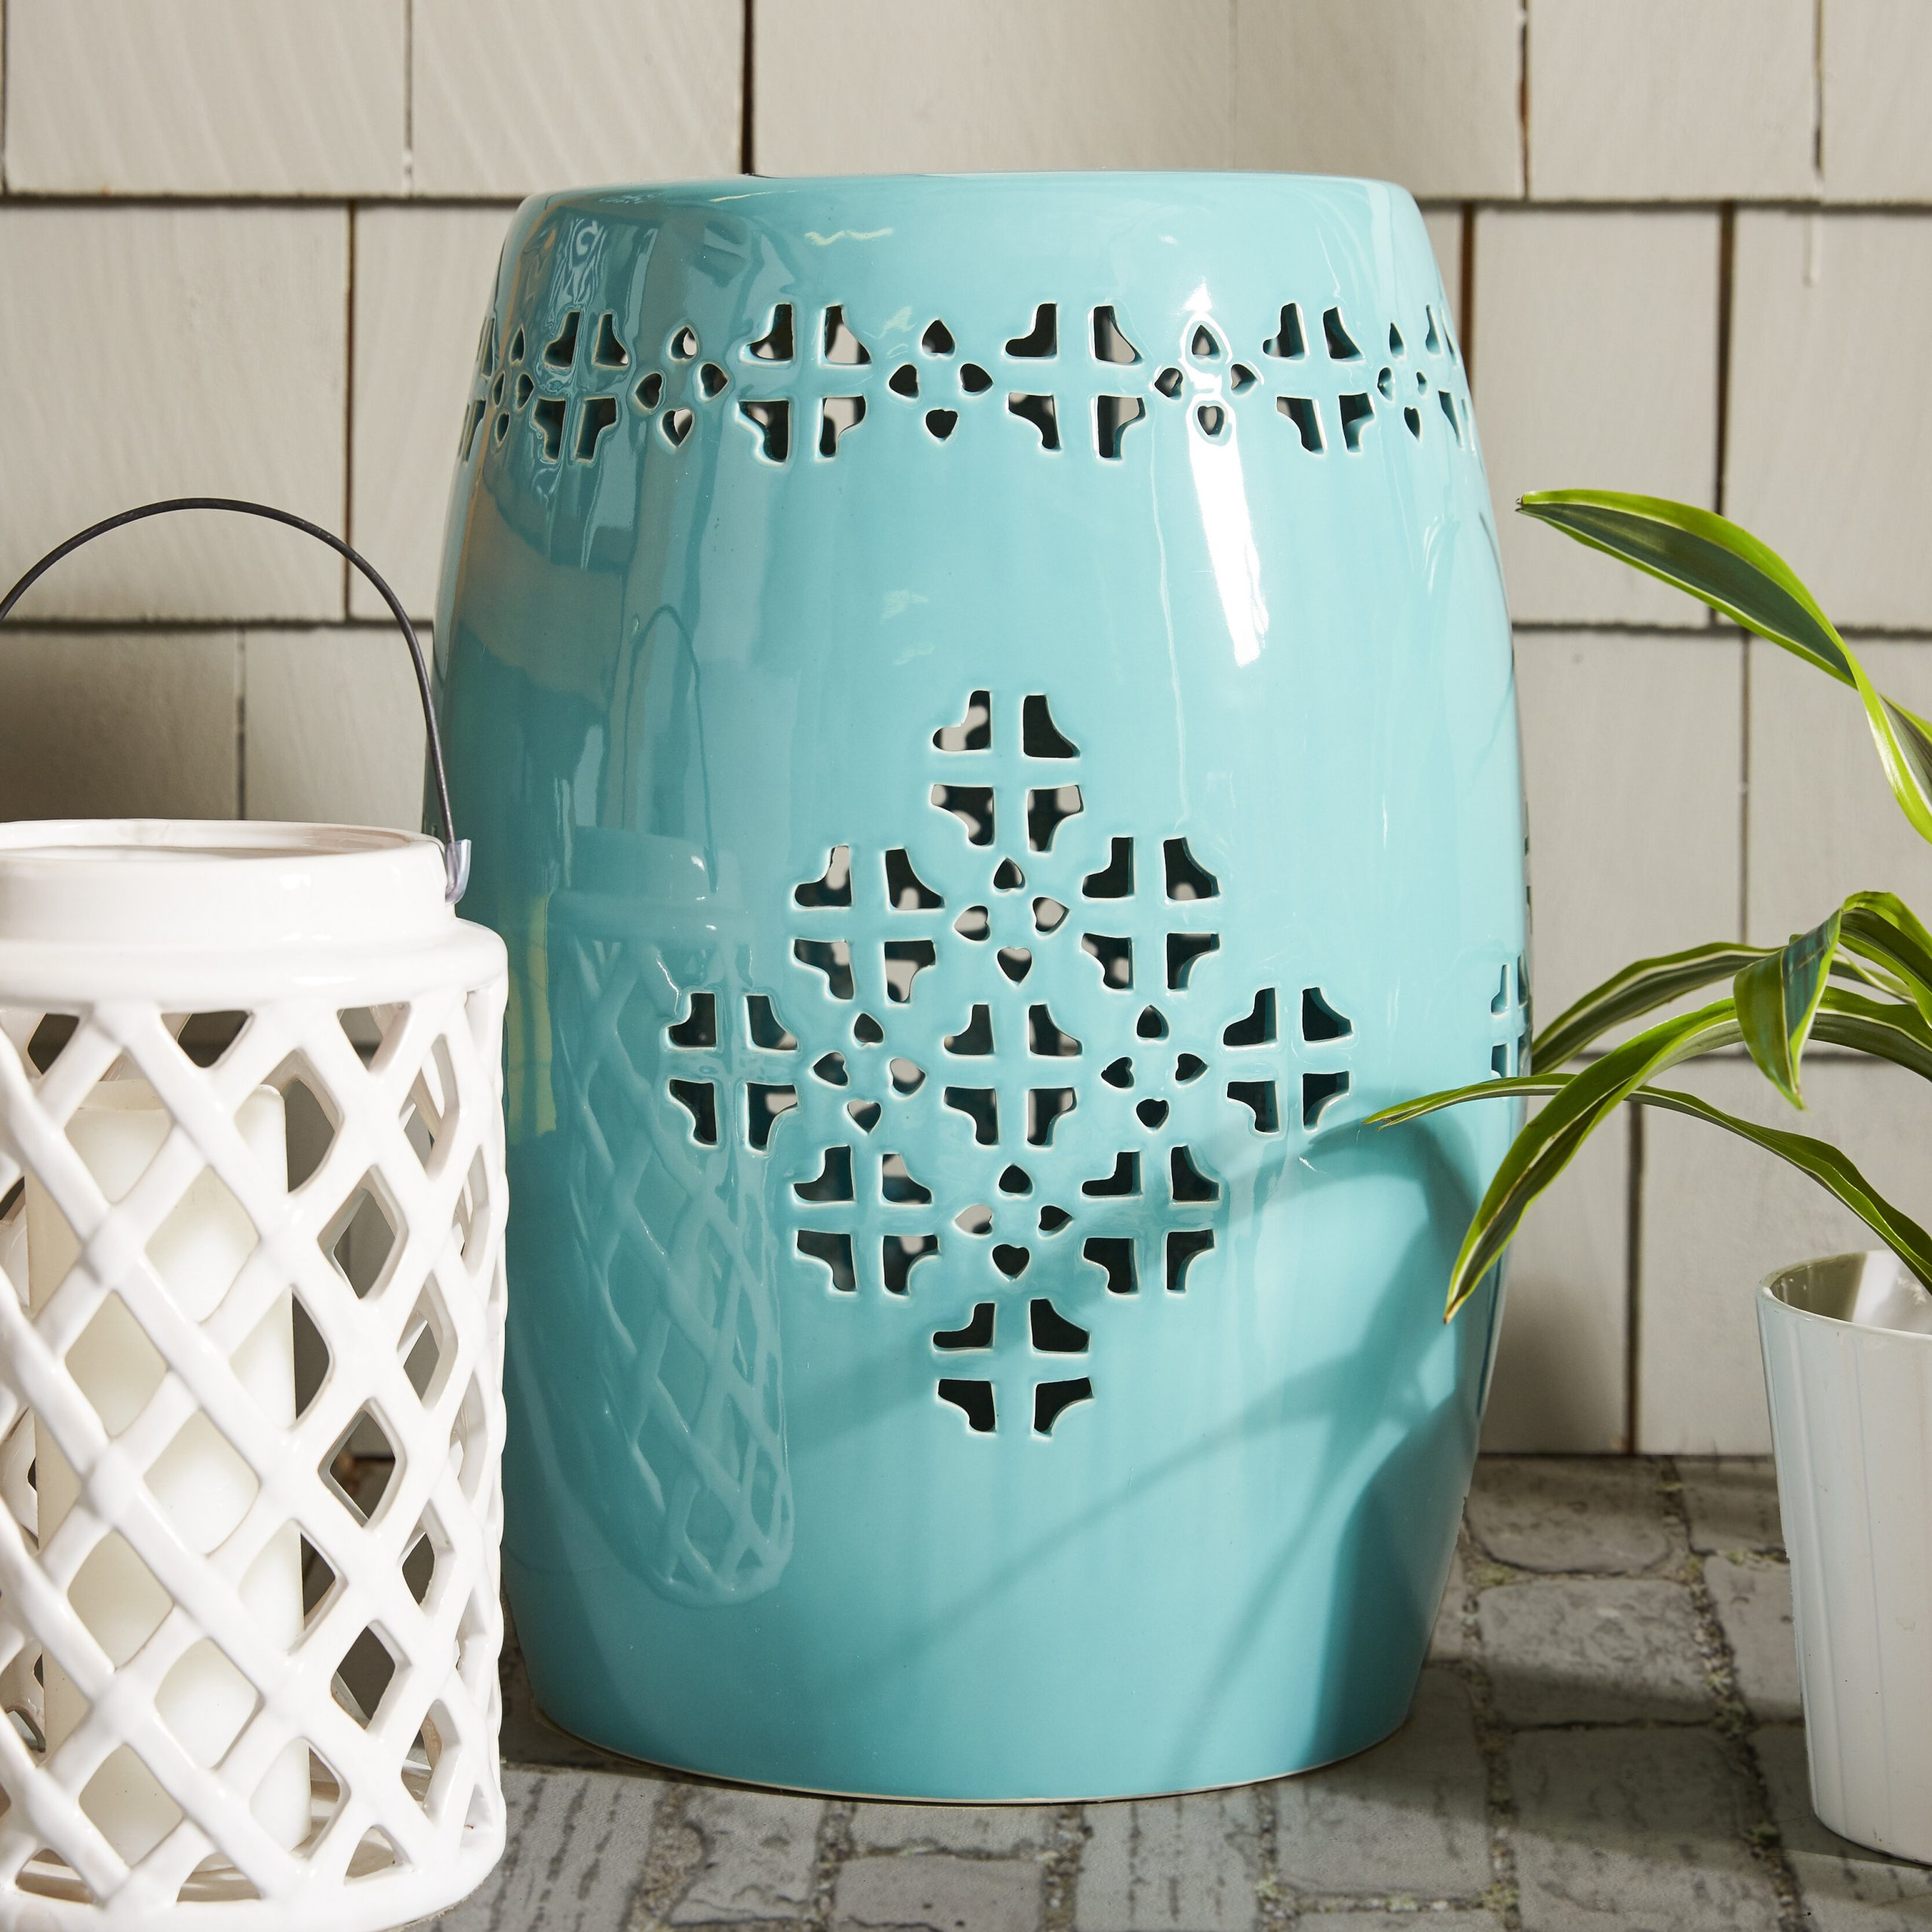 Lorelei Quatrefoil Garden Stool Regarding Canarsie Ceramic Garden Stools (View 9 of 25)